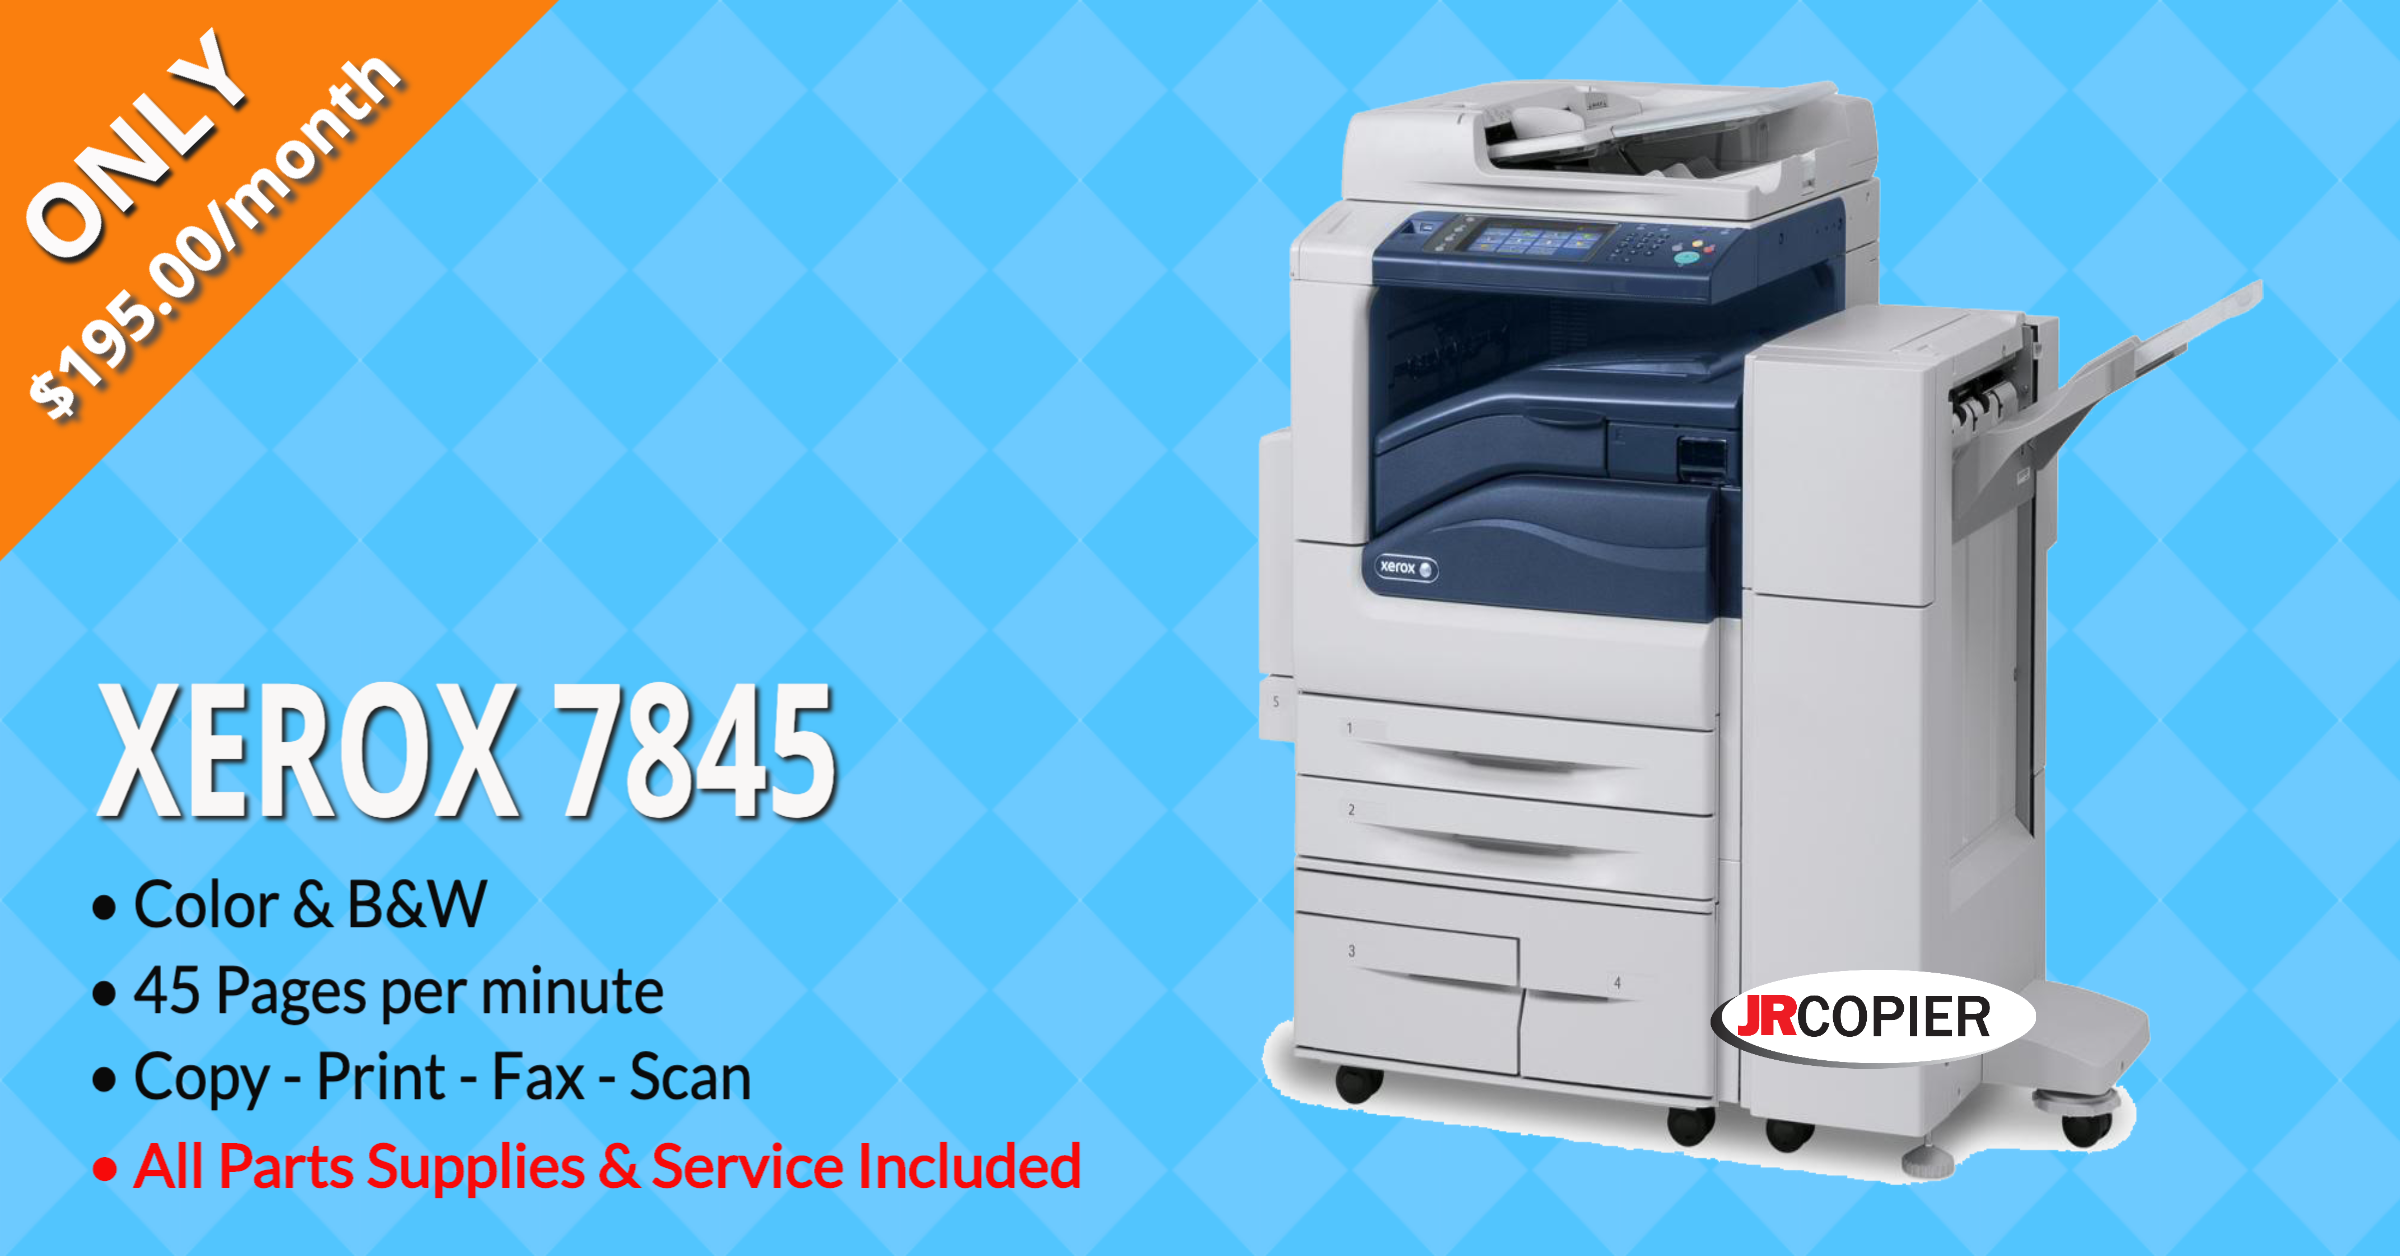 Color Printer 32707, 32708, 32719, 32765